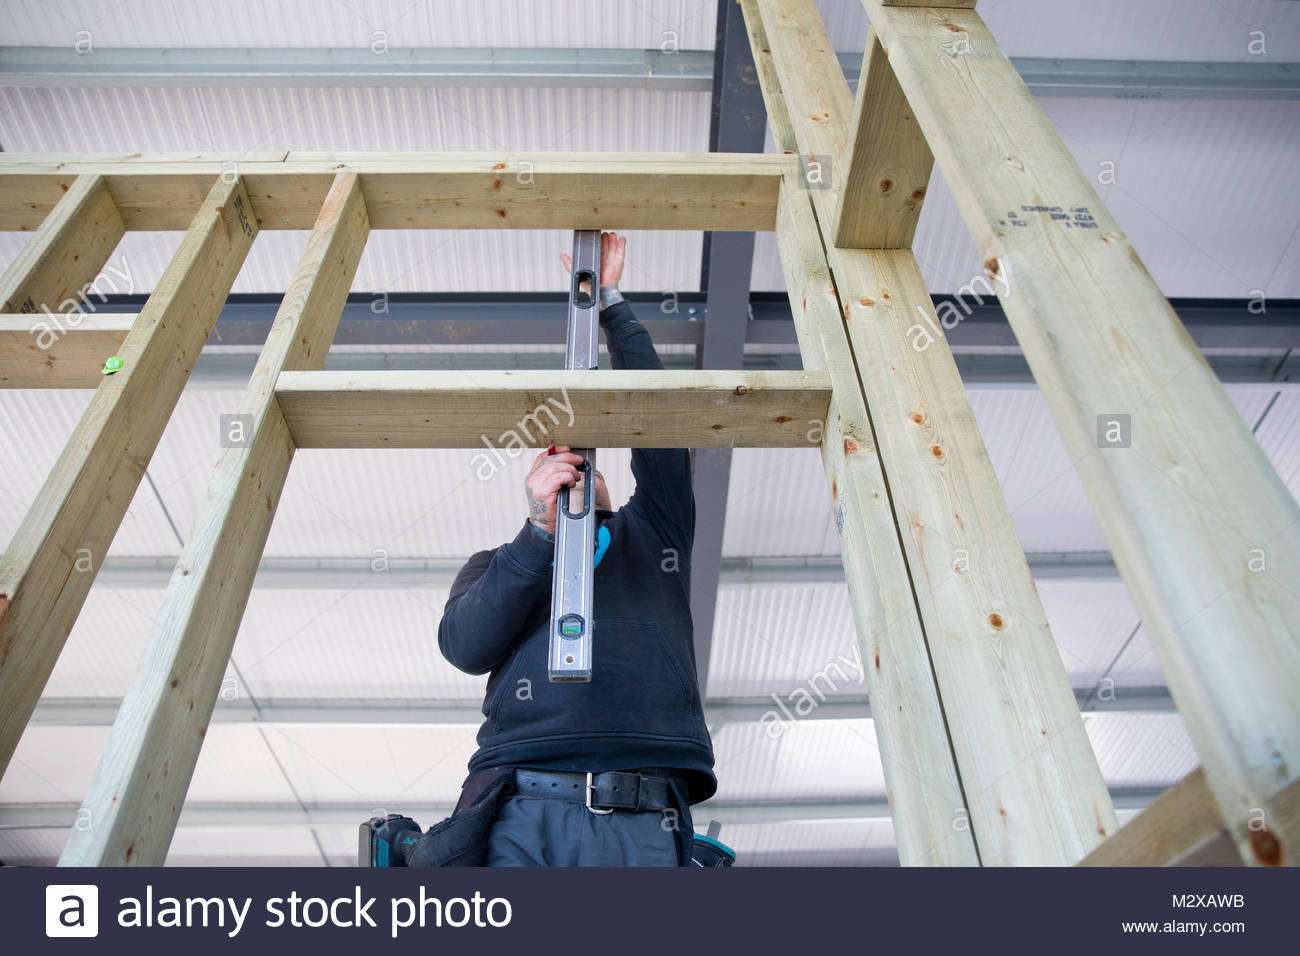 Carpenter using spirit level to check angle of wood frame on construction site interior - Stock Image